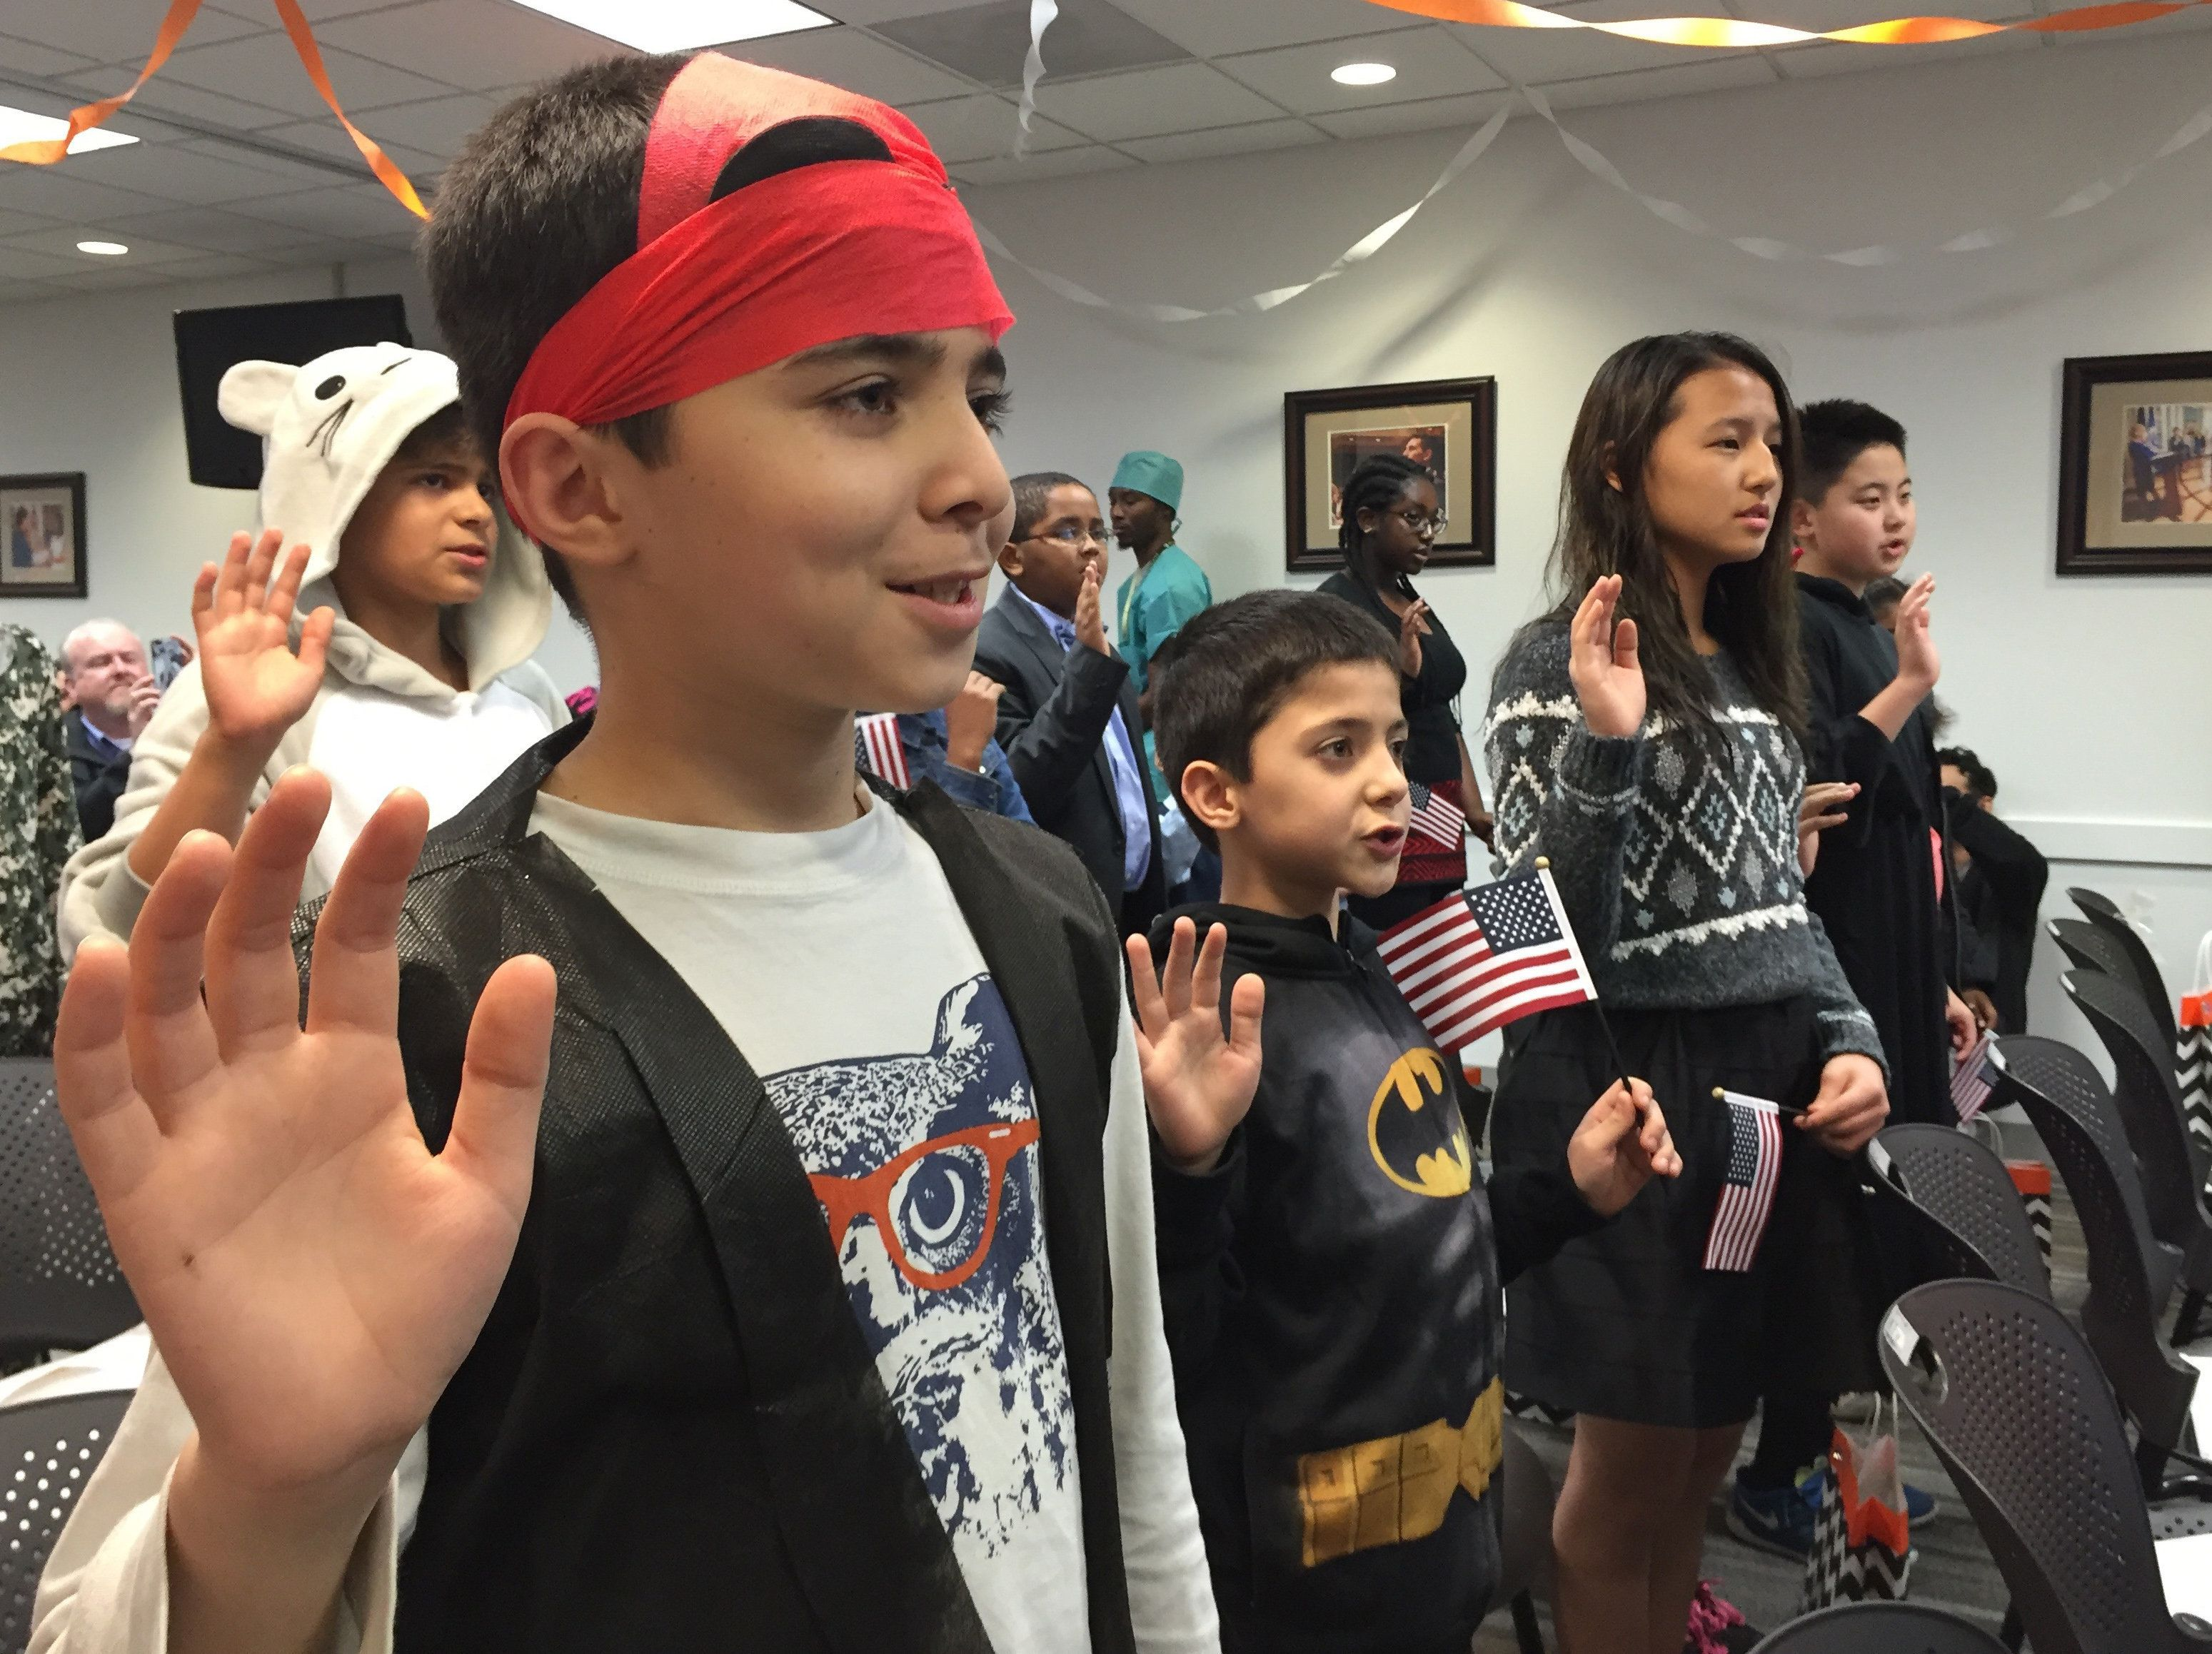 A new U.S. citizen takes the oath of allegiance.